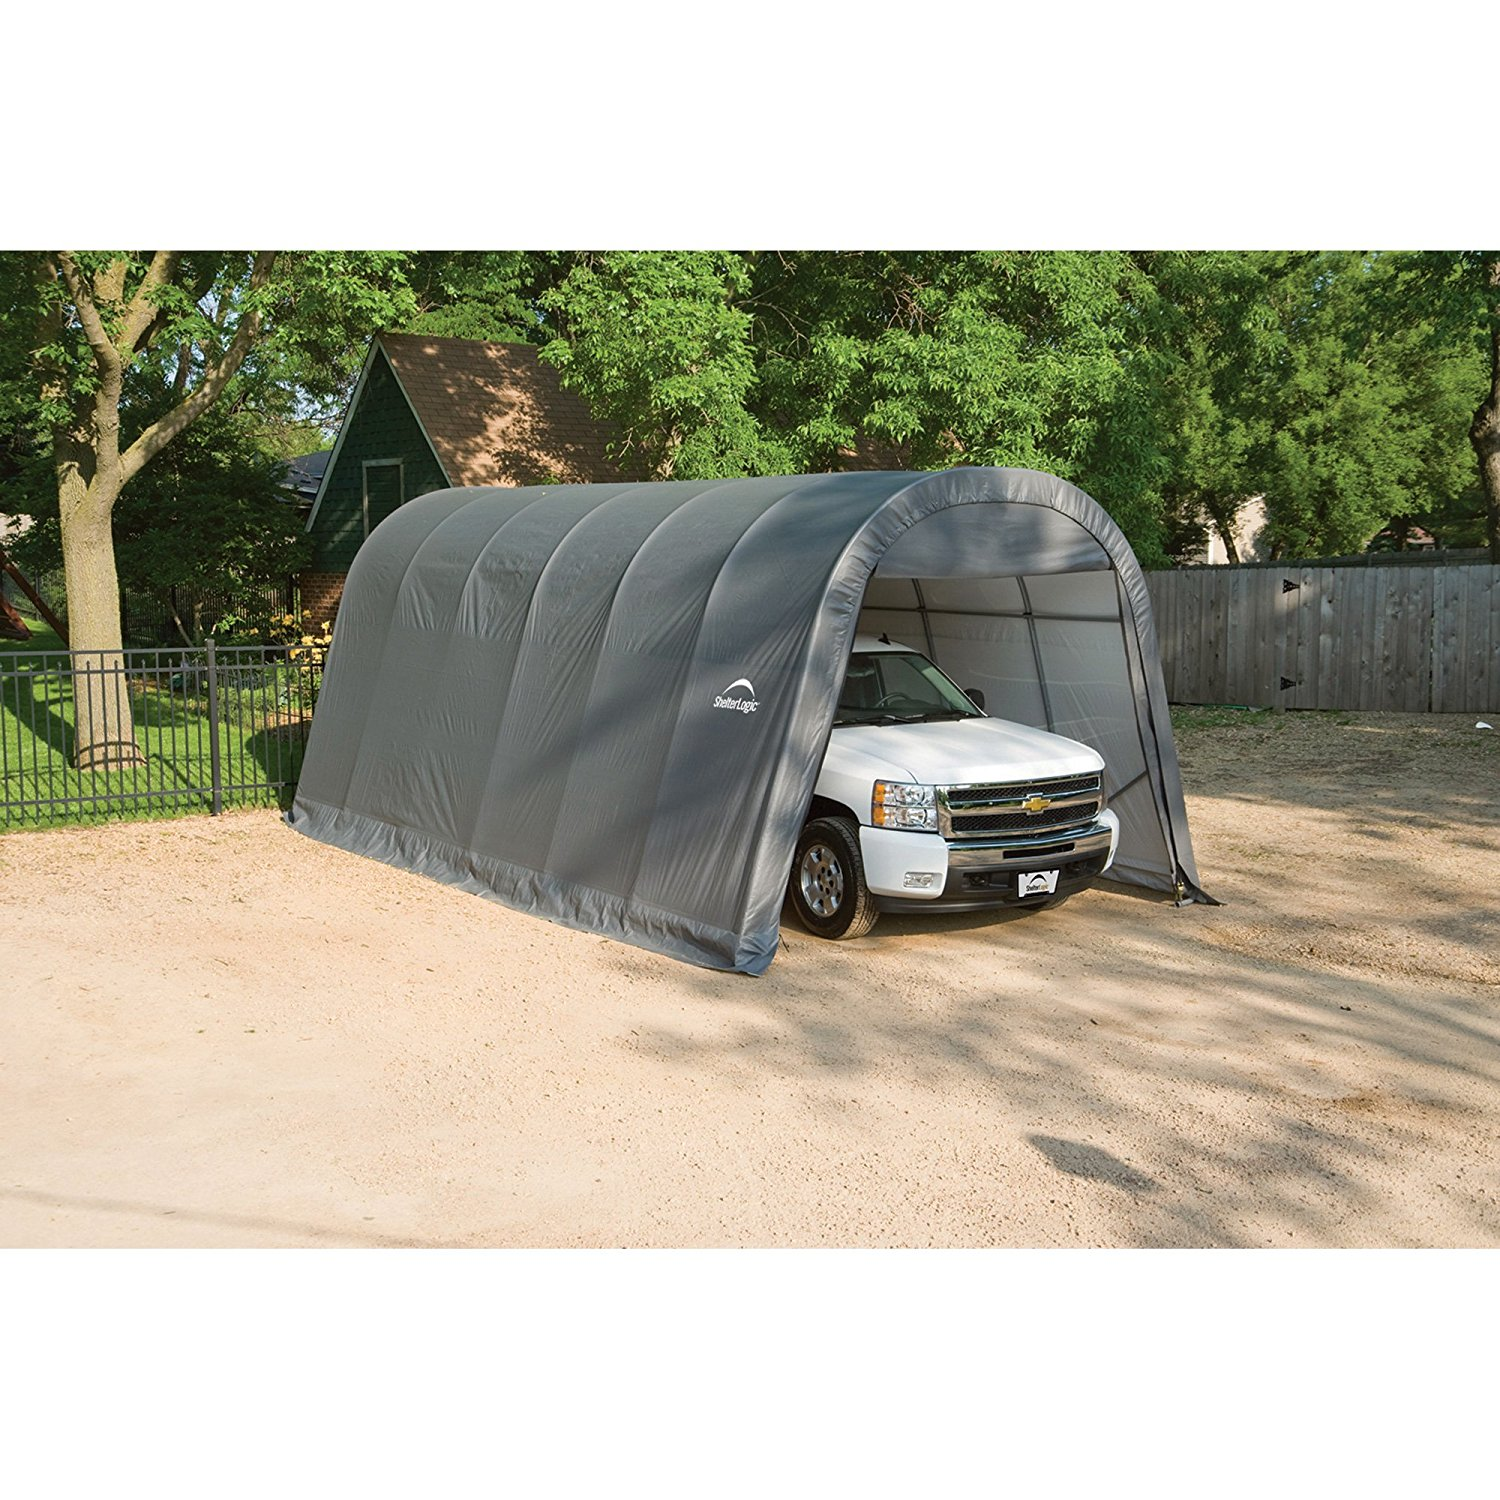 12-Ft.W Round-Style Instant Garage at Lowest price in Market